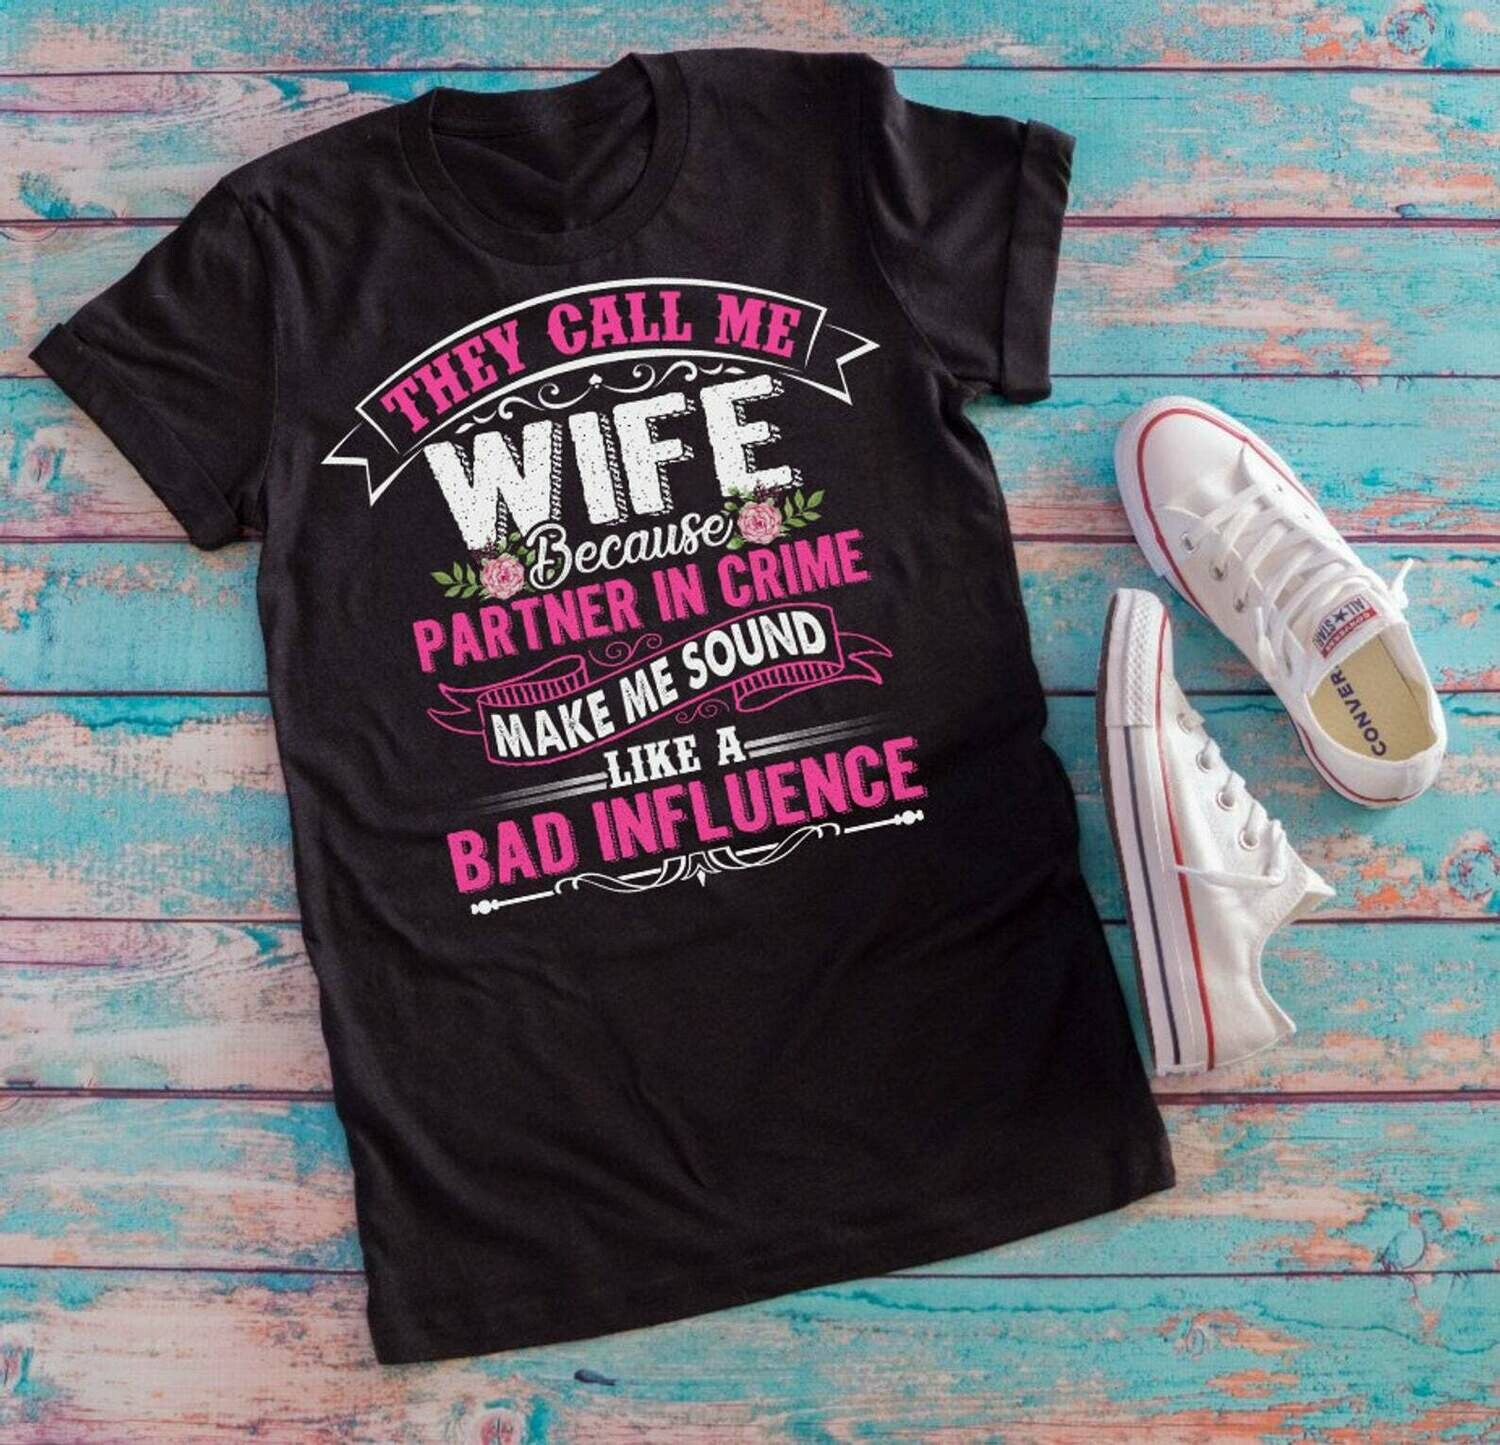 They call me wife because partner in crime T-shirt, wife shirts, gift for wife, women's day gifts, funny wife tank top, funny wife tee shirt